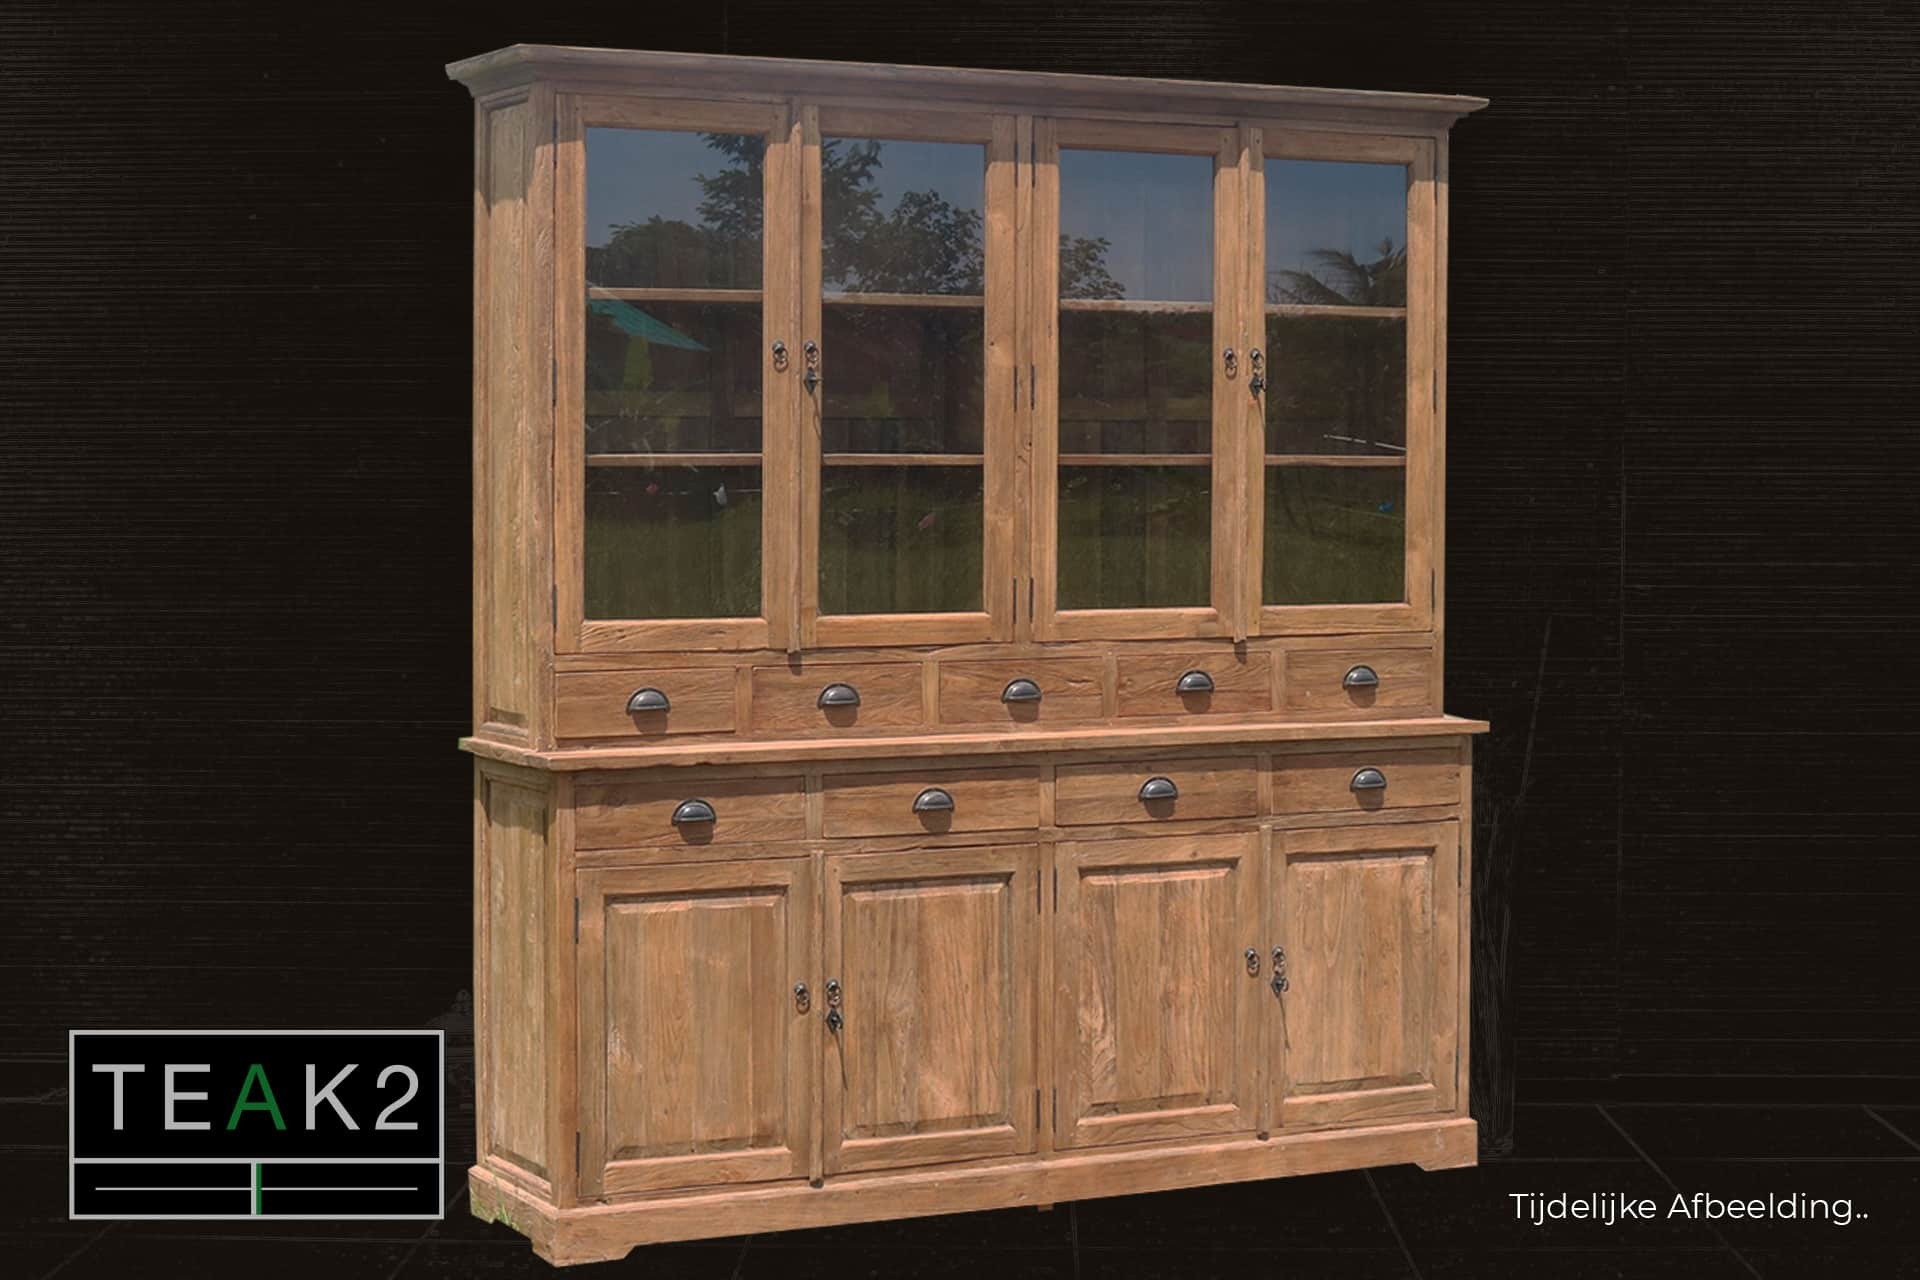 Mix Lebar 130-210L Old | rustic wooden buffet cabinet with drawers - TEAK2